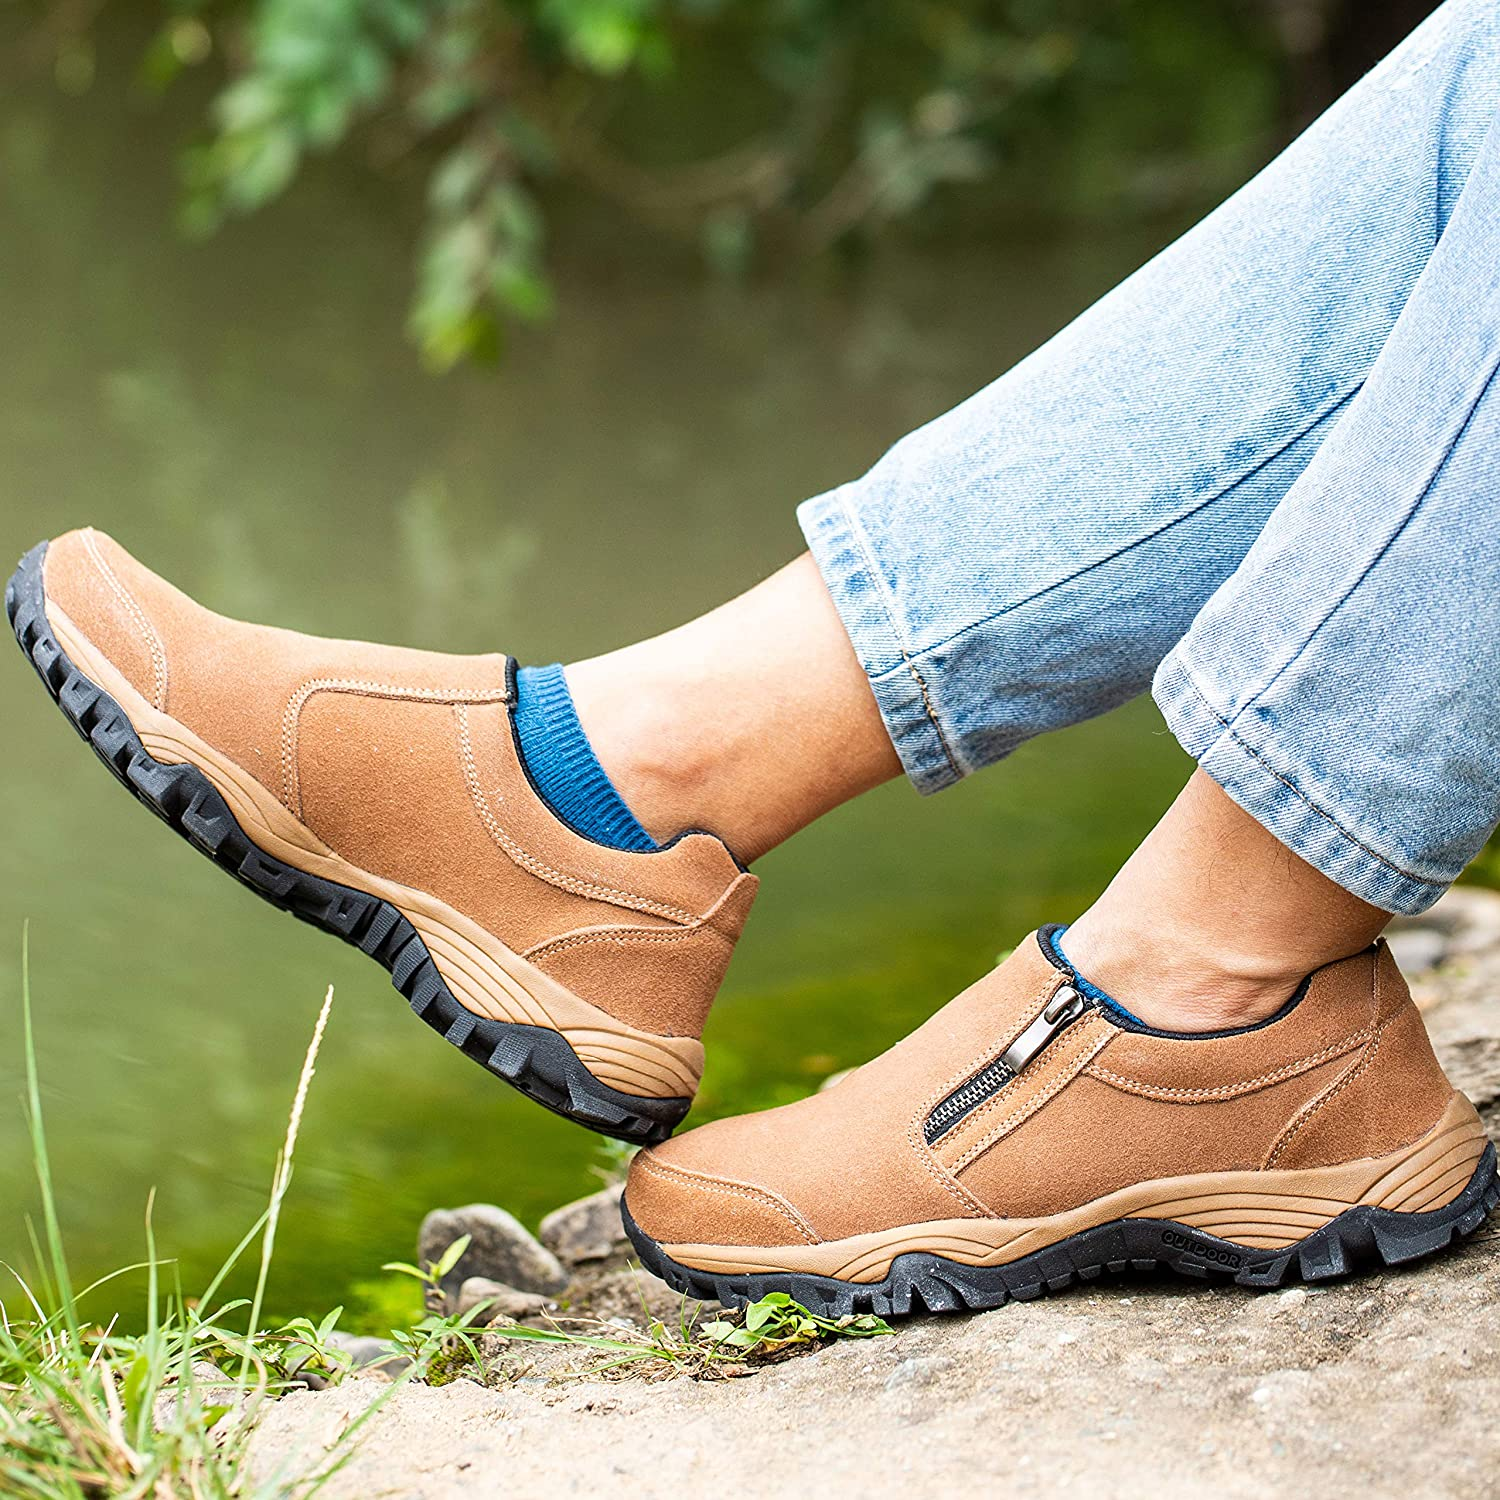 SILENTCARE Mens Loafers Casual Shoes,Breathable Lightweight Zipper Slip On Sneakers, Hiking Shoes for Outdoor Trail Trekking